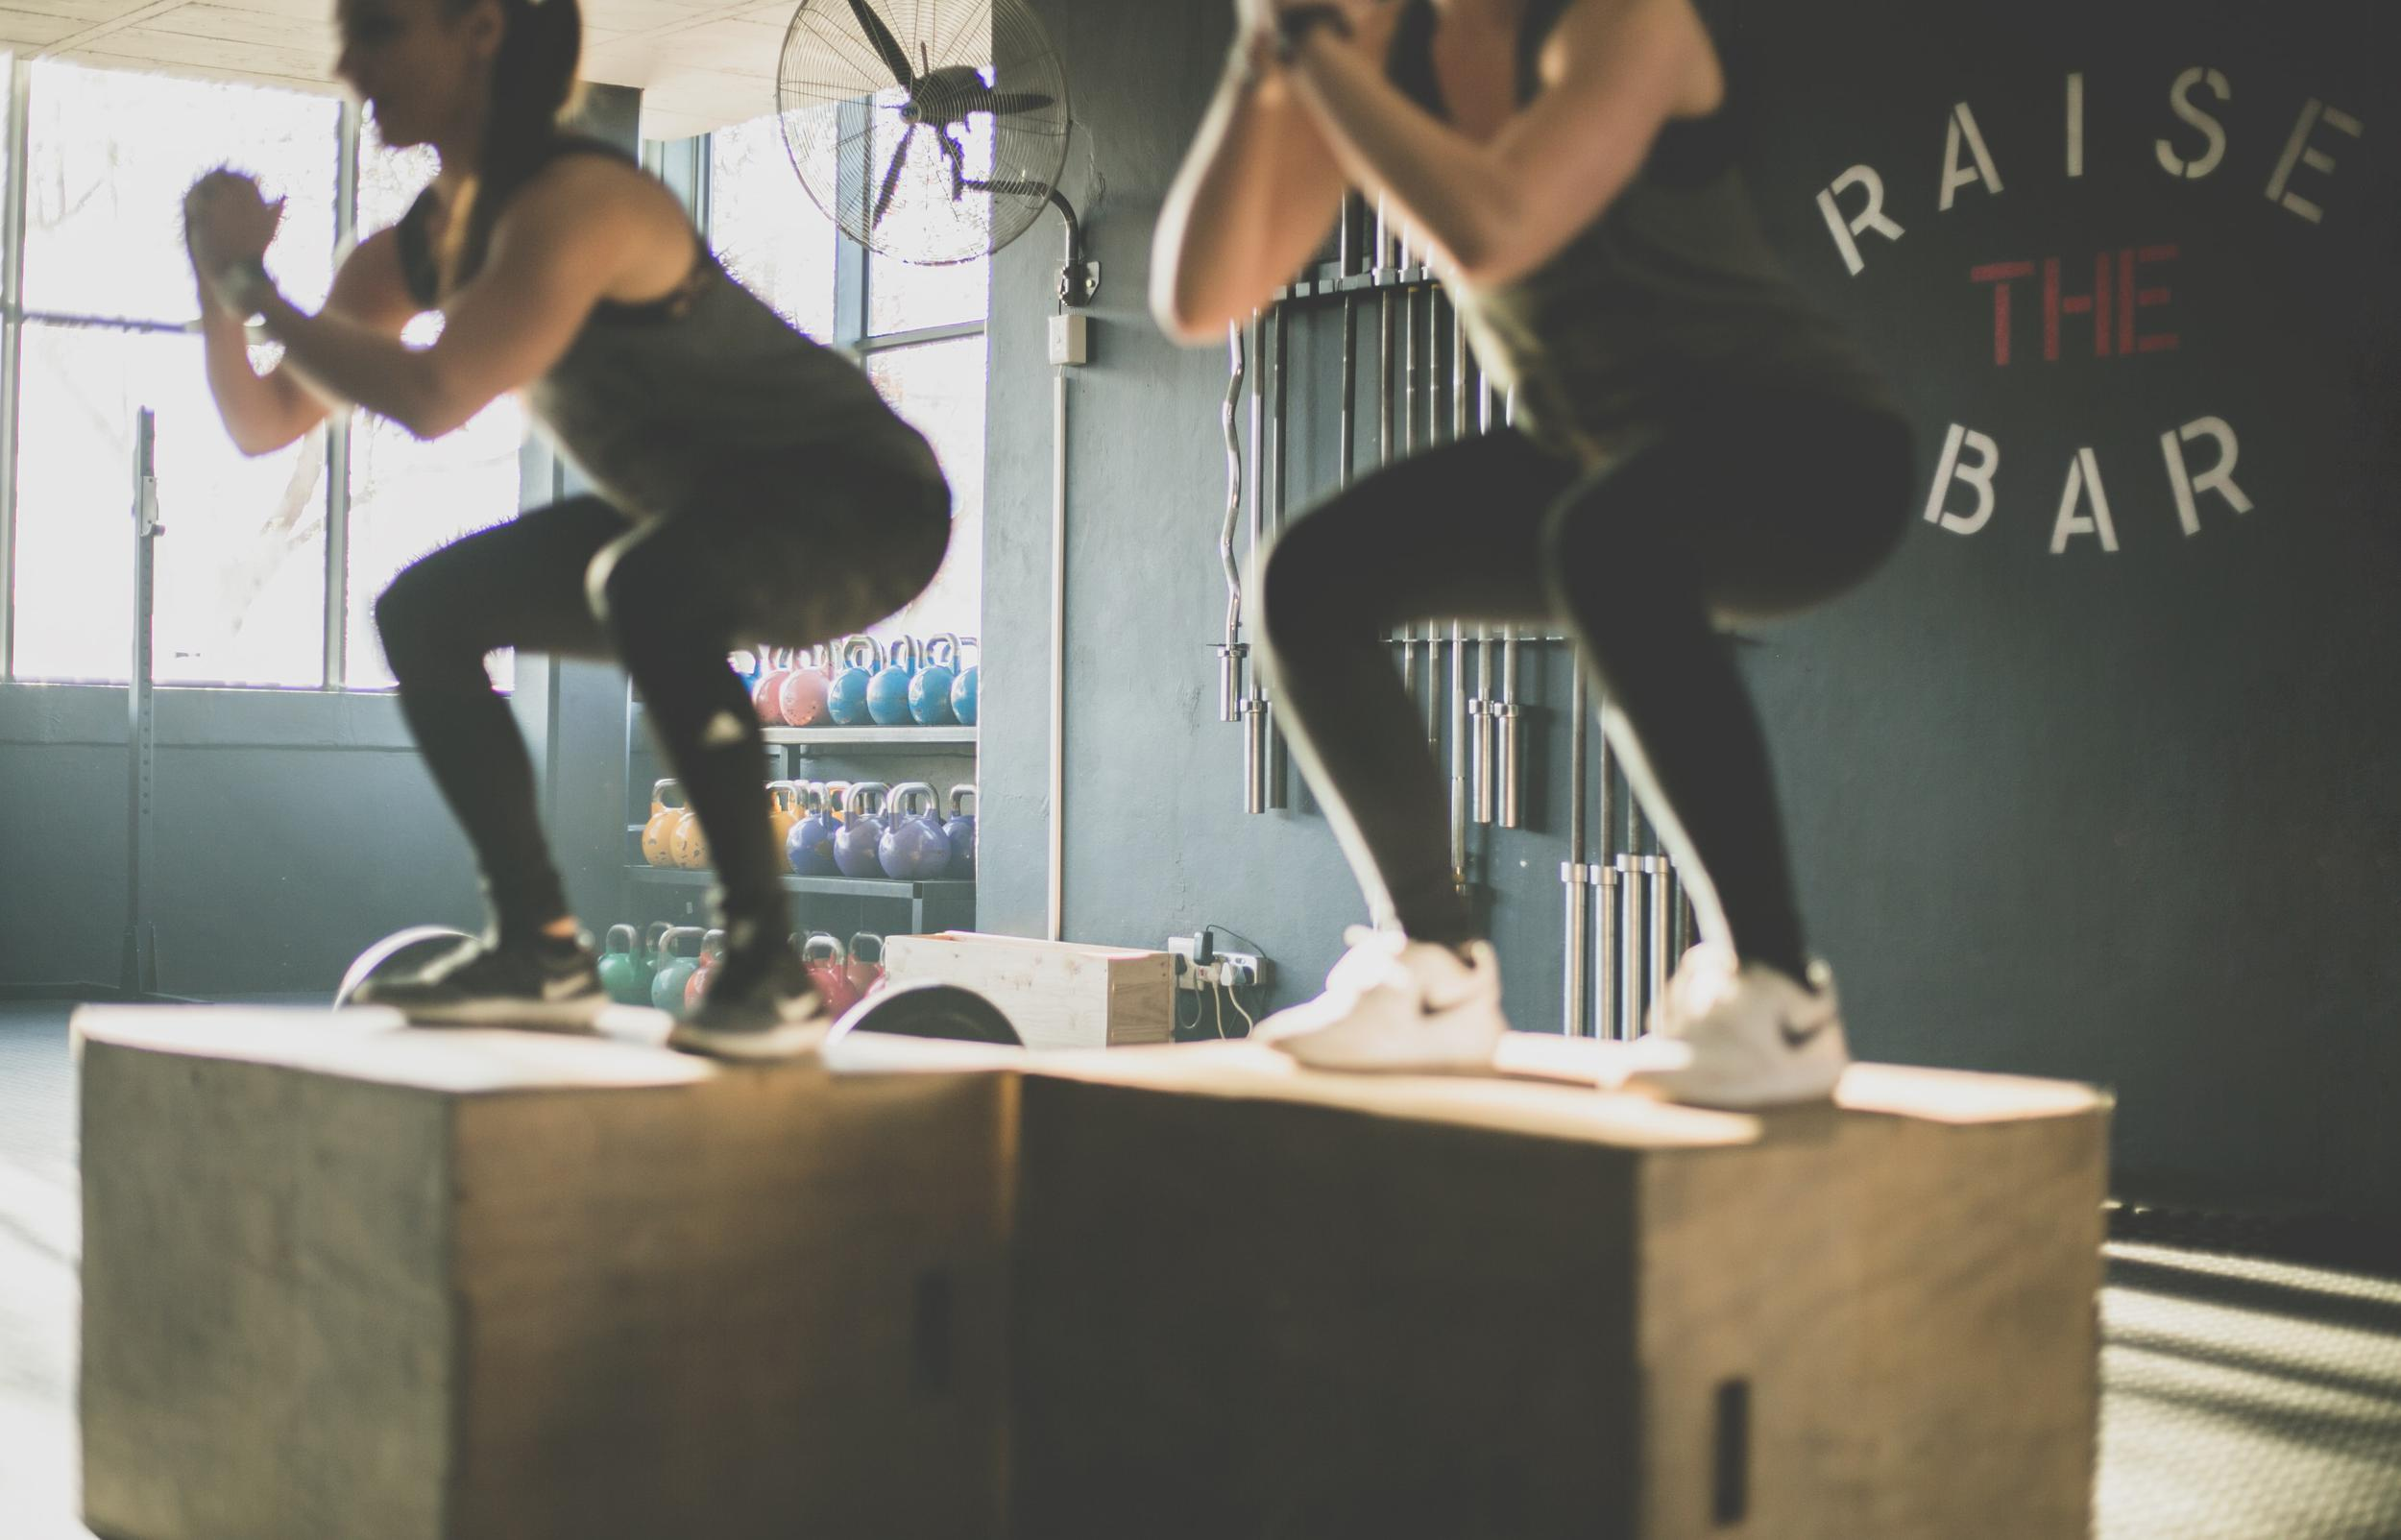 two women doing box jumps in a gym